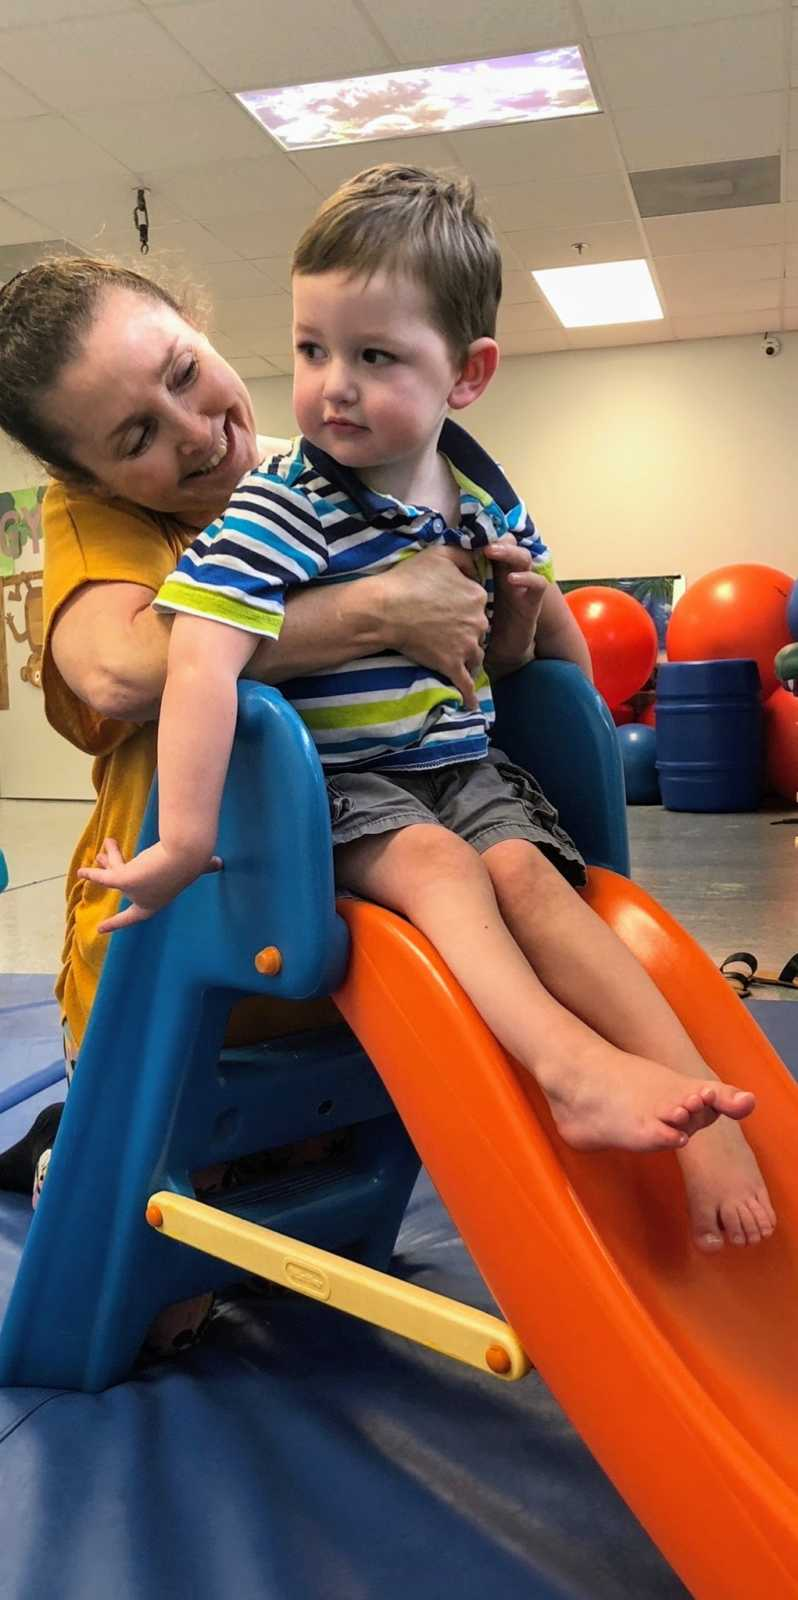 A mom and her son with special needs on a slide